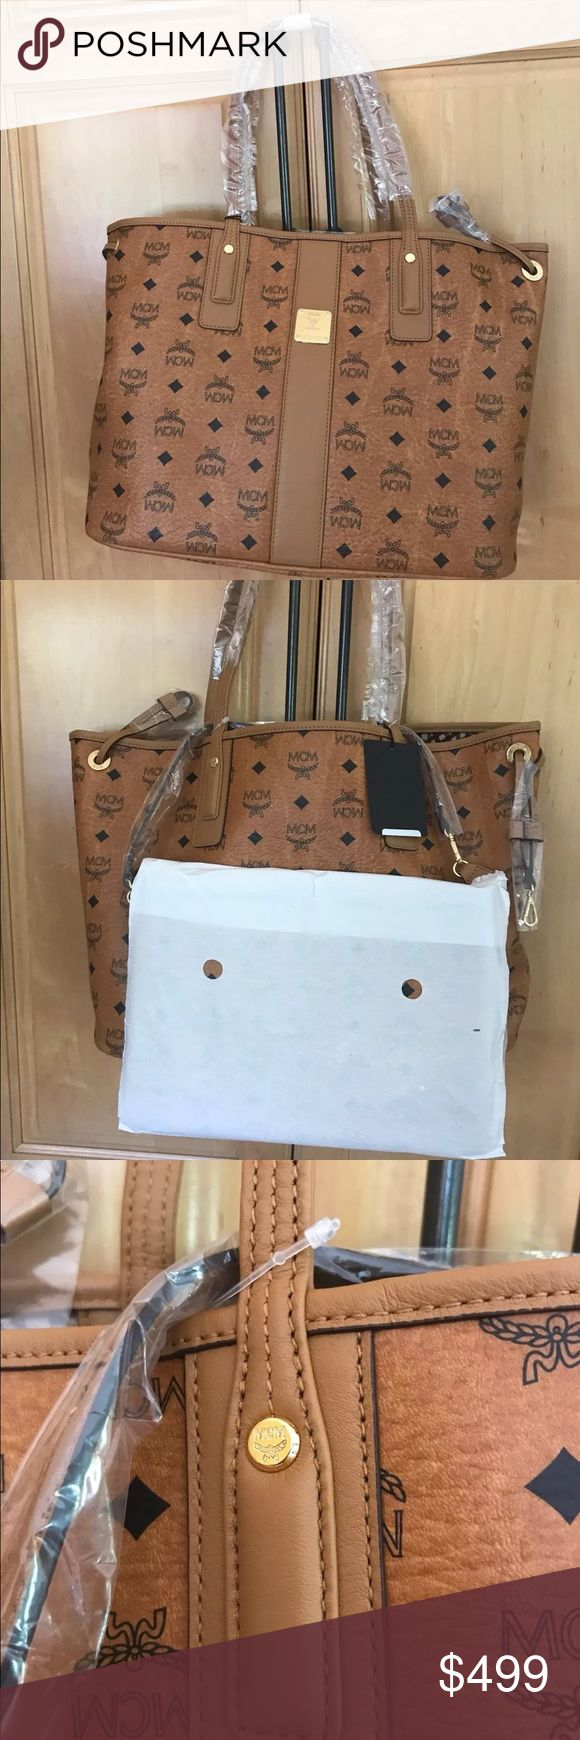 Authentic MCM Liz NEW tote and pouch medium Brand new mcm medium Liz tote and pouch. Includes cards and duster. TAg attached. Price firm MCM Bags Totes